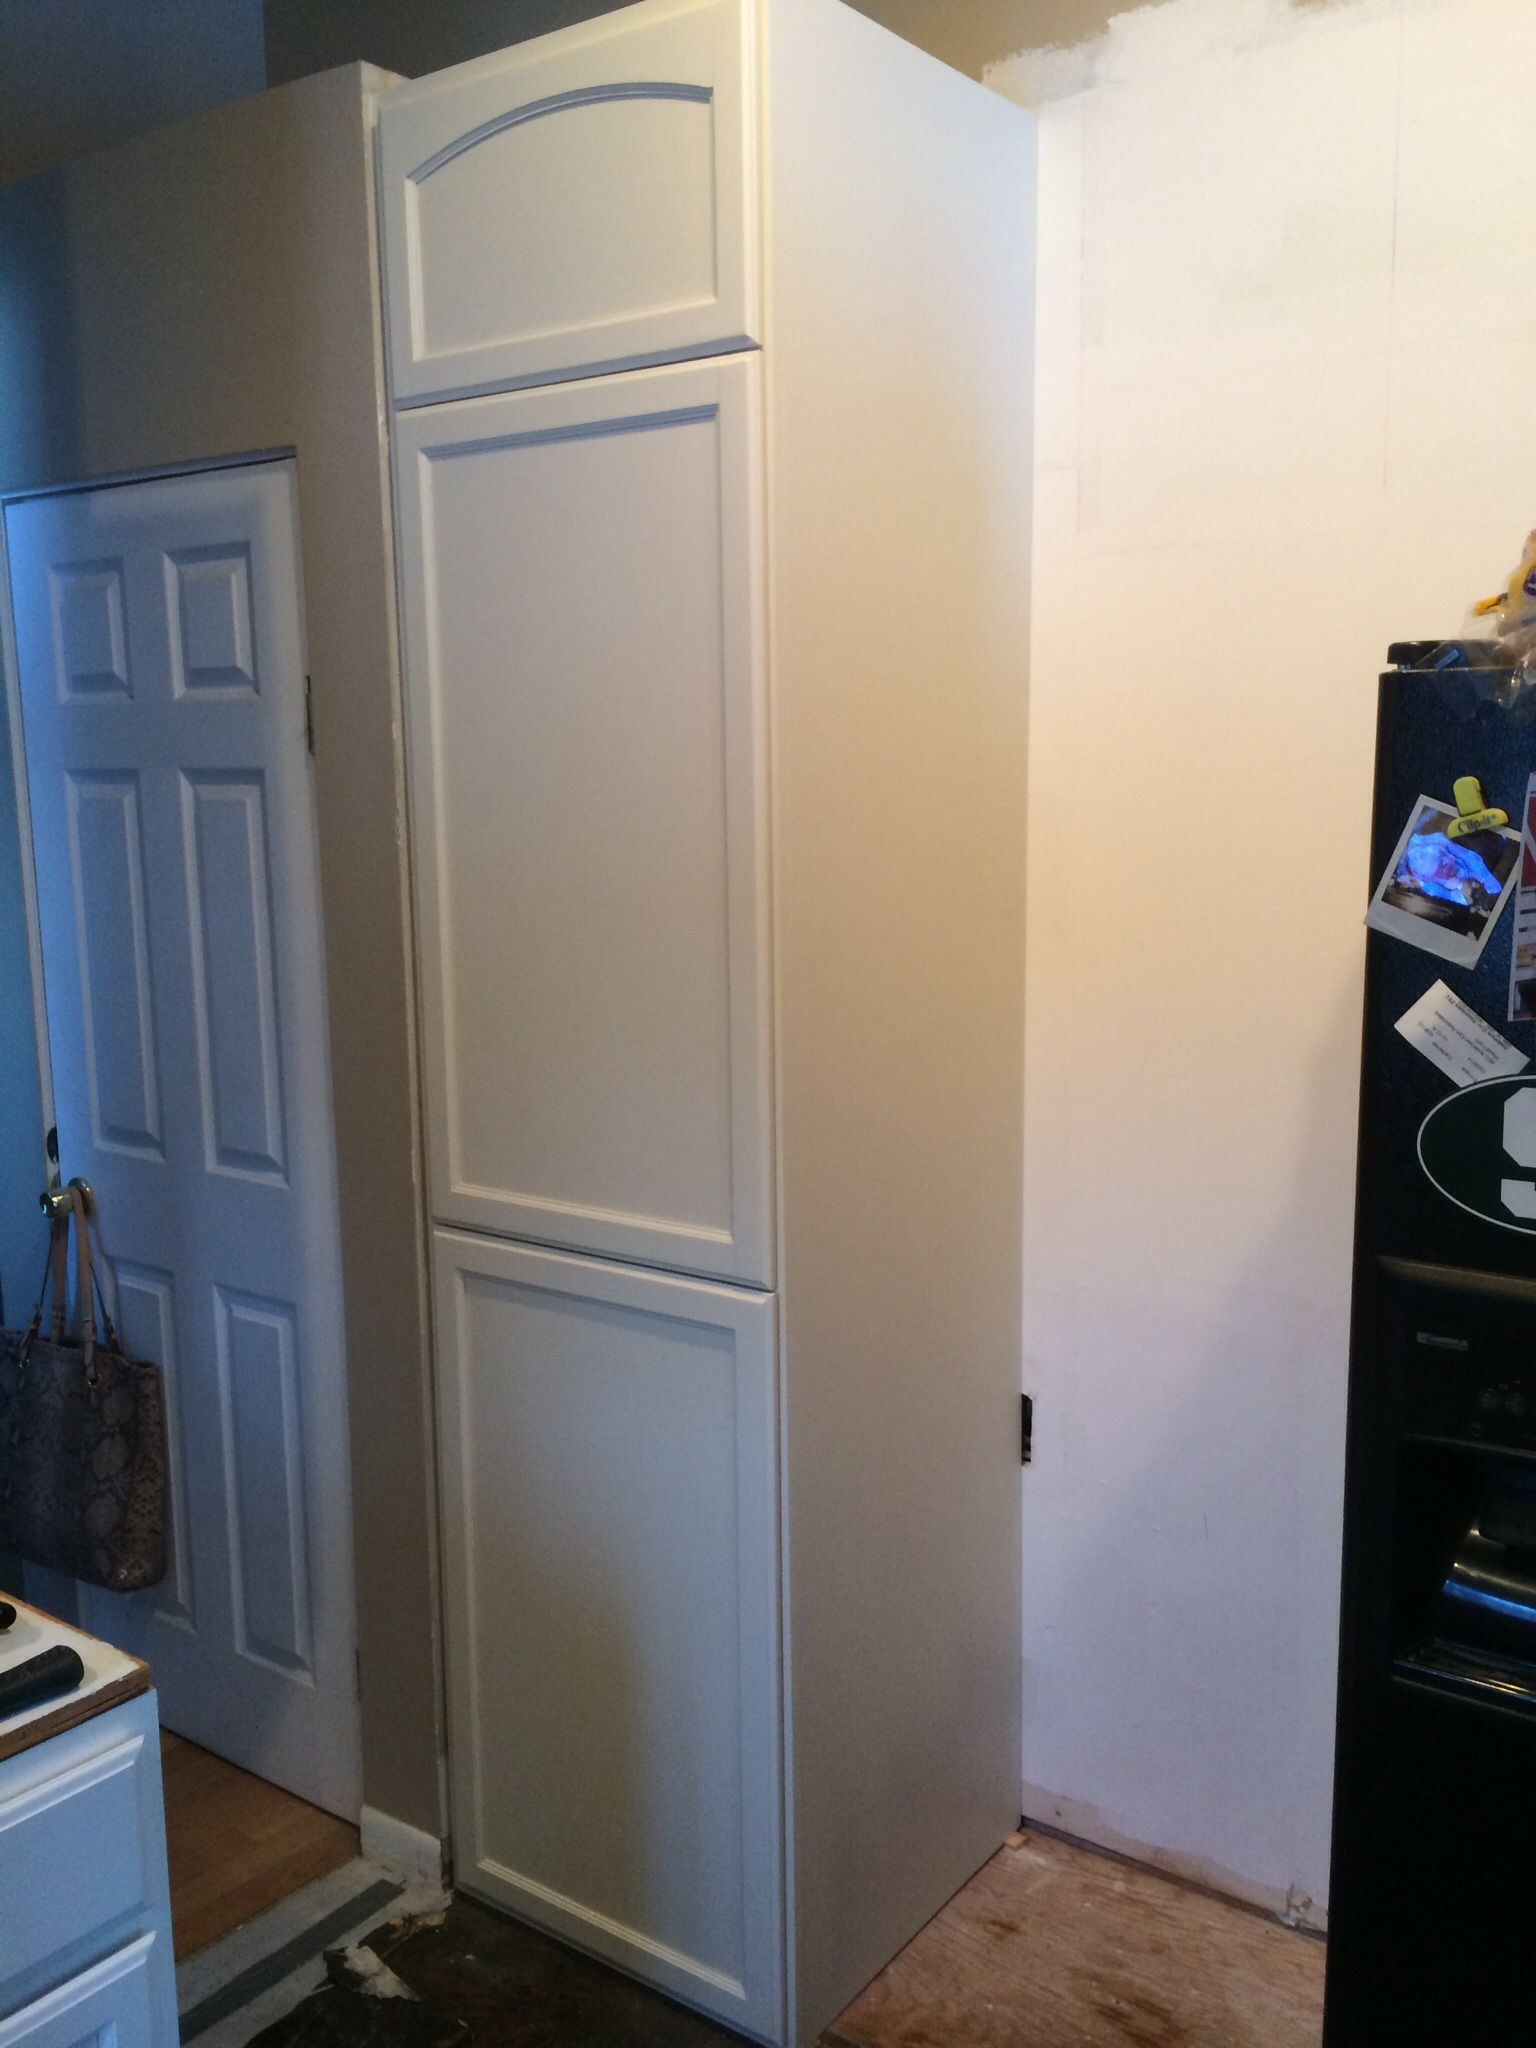 Kitchen pantry do it yourself home projects from ana white kitchen pantry do it yourself home projects from ana white solutioingenieria Choice Image